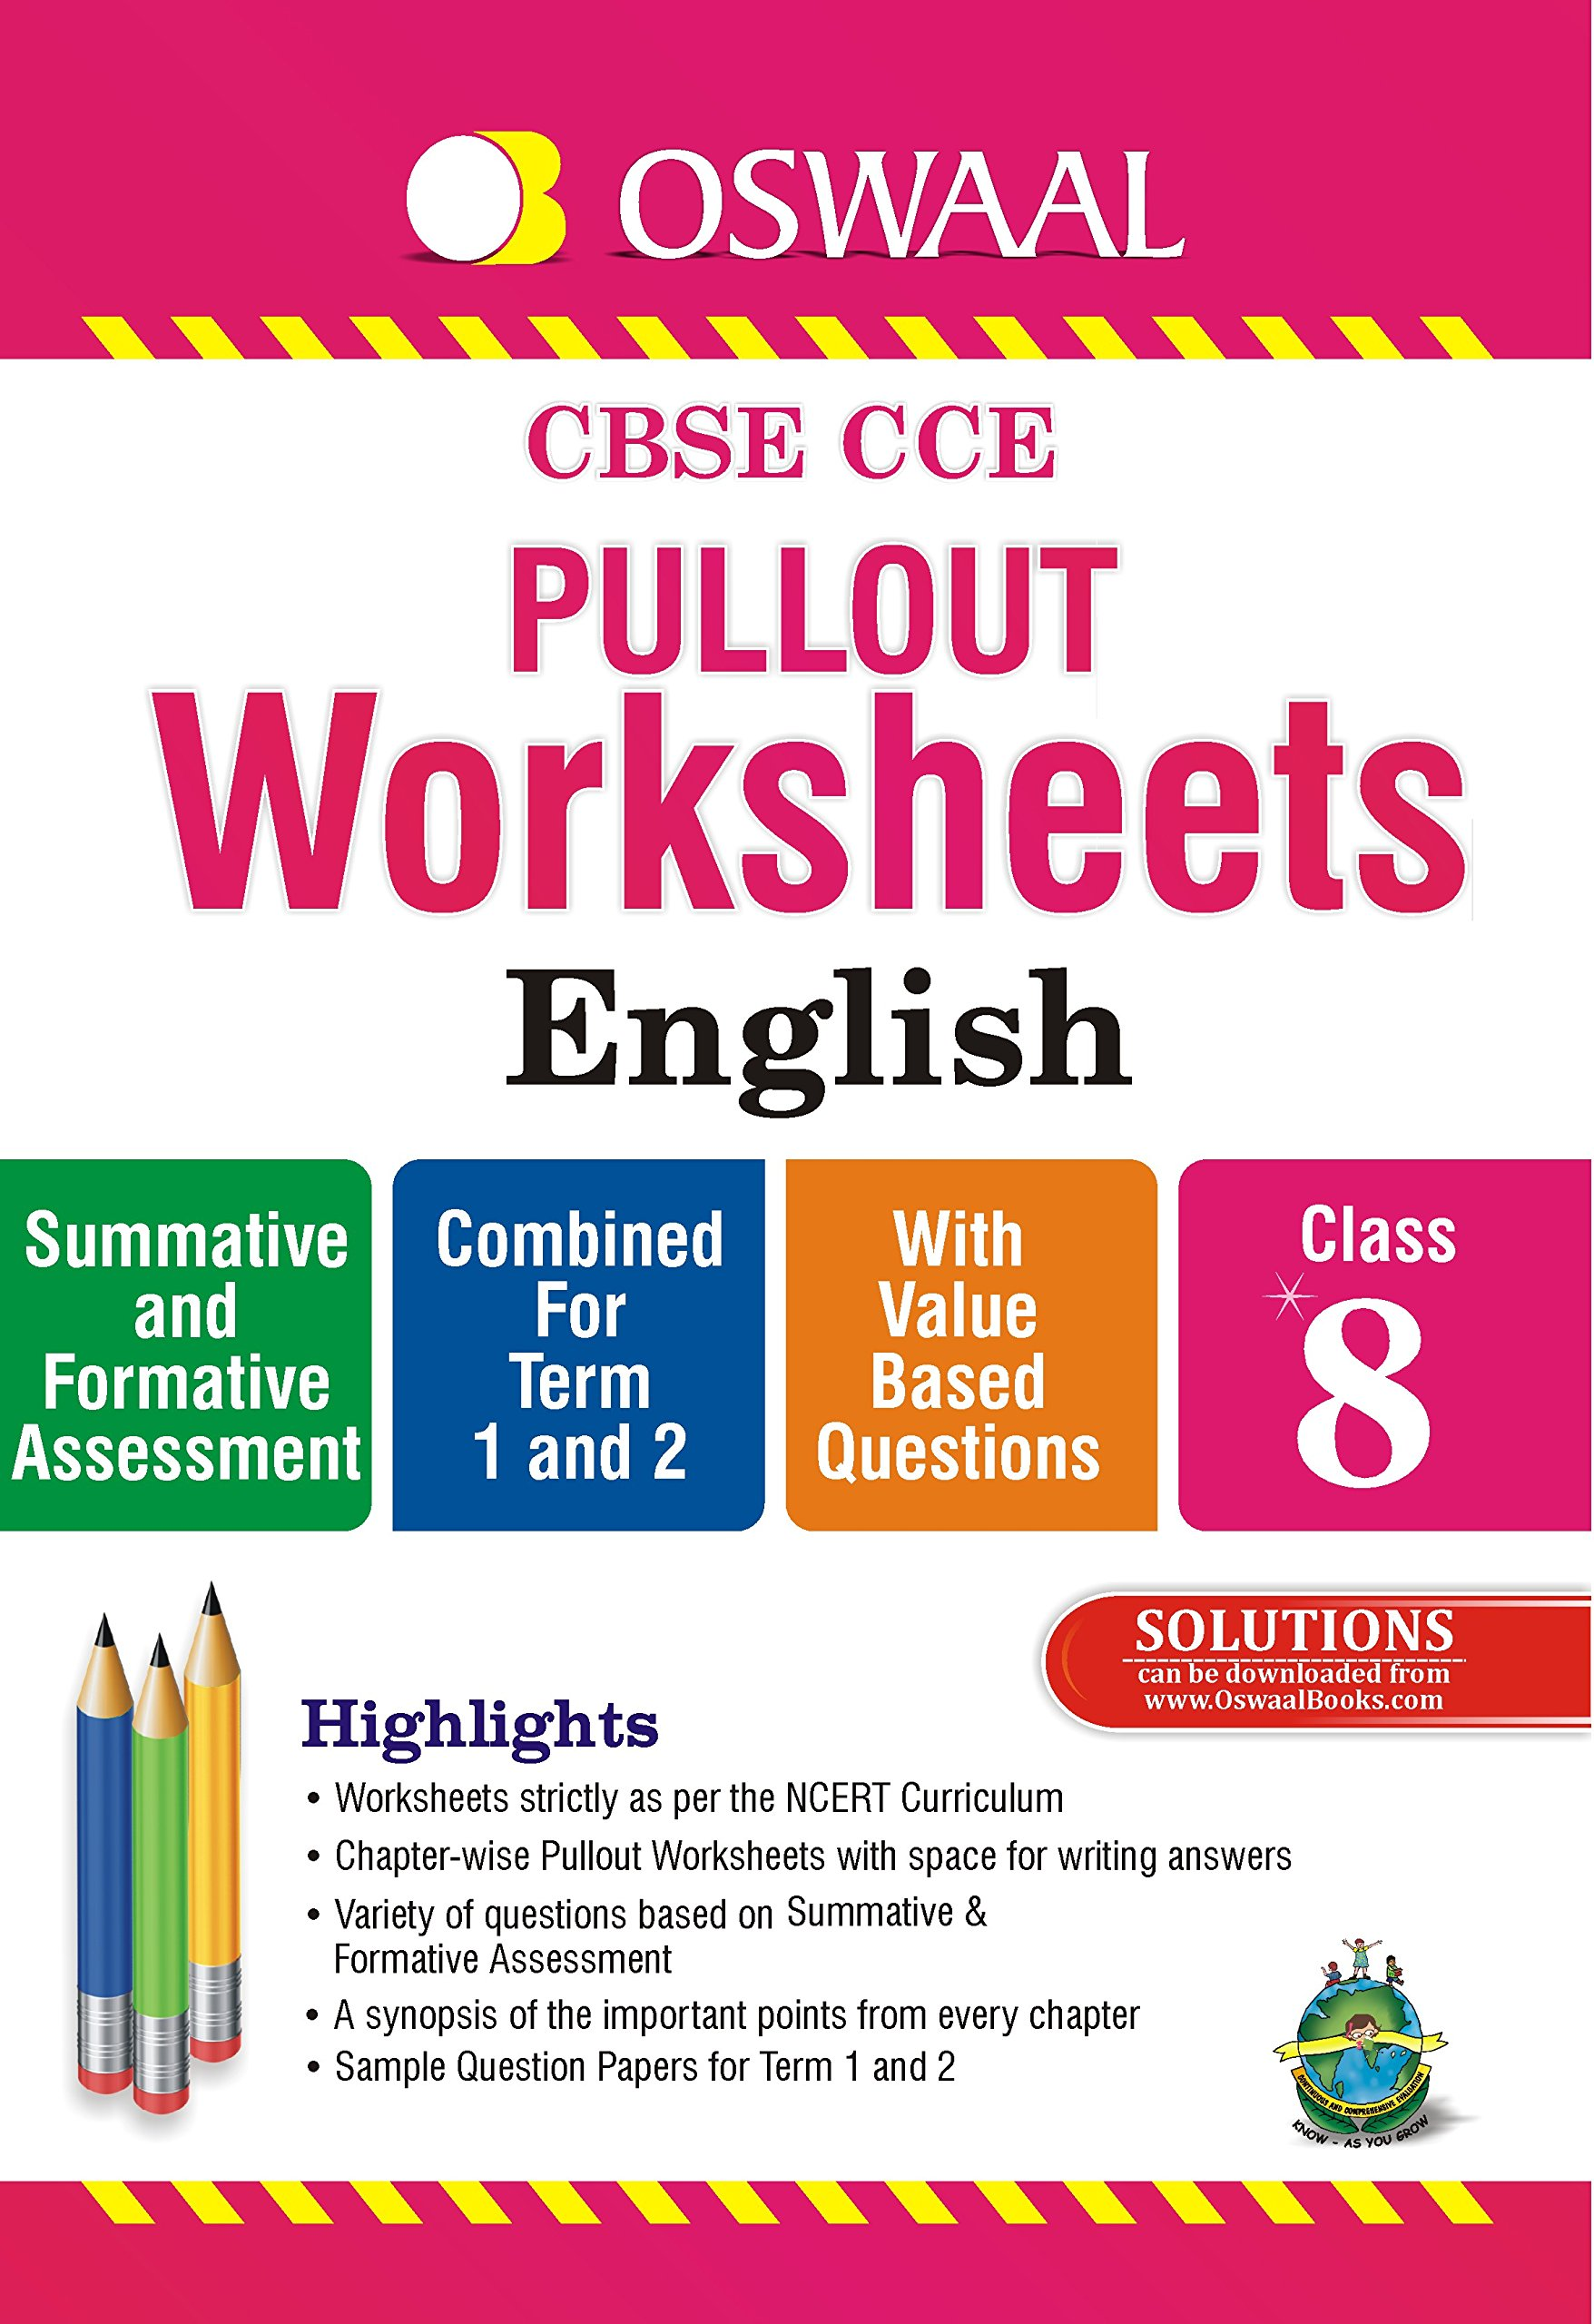 Oswaal Cbse Cce Pullout Worksheets English For Class 8 Old Edition